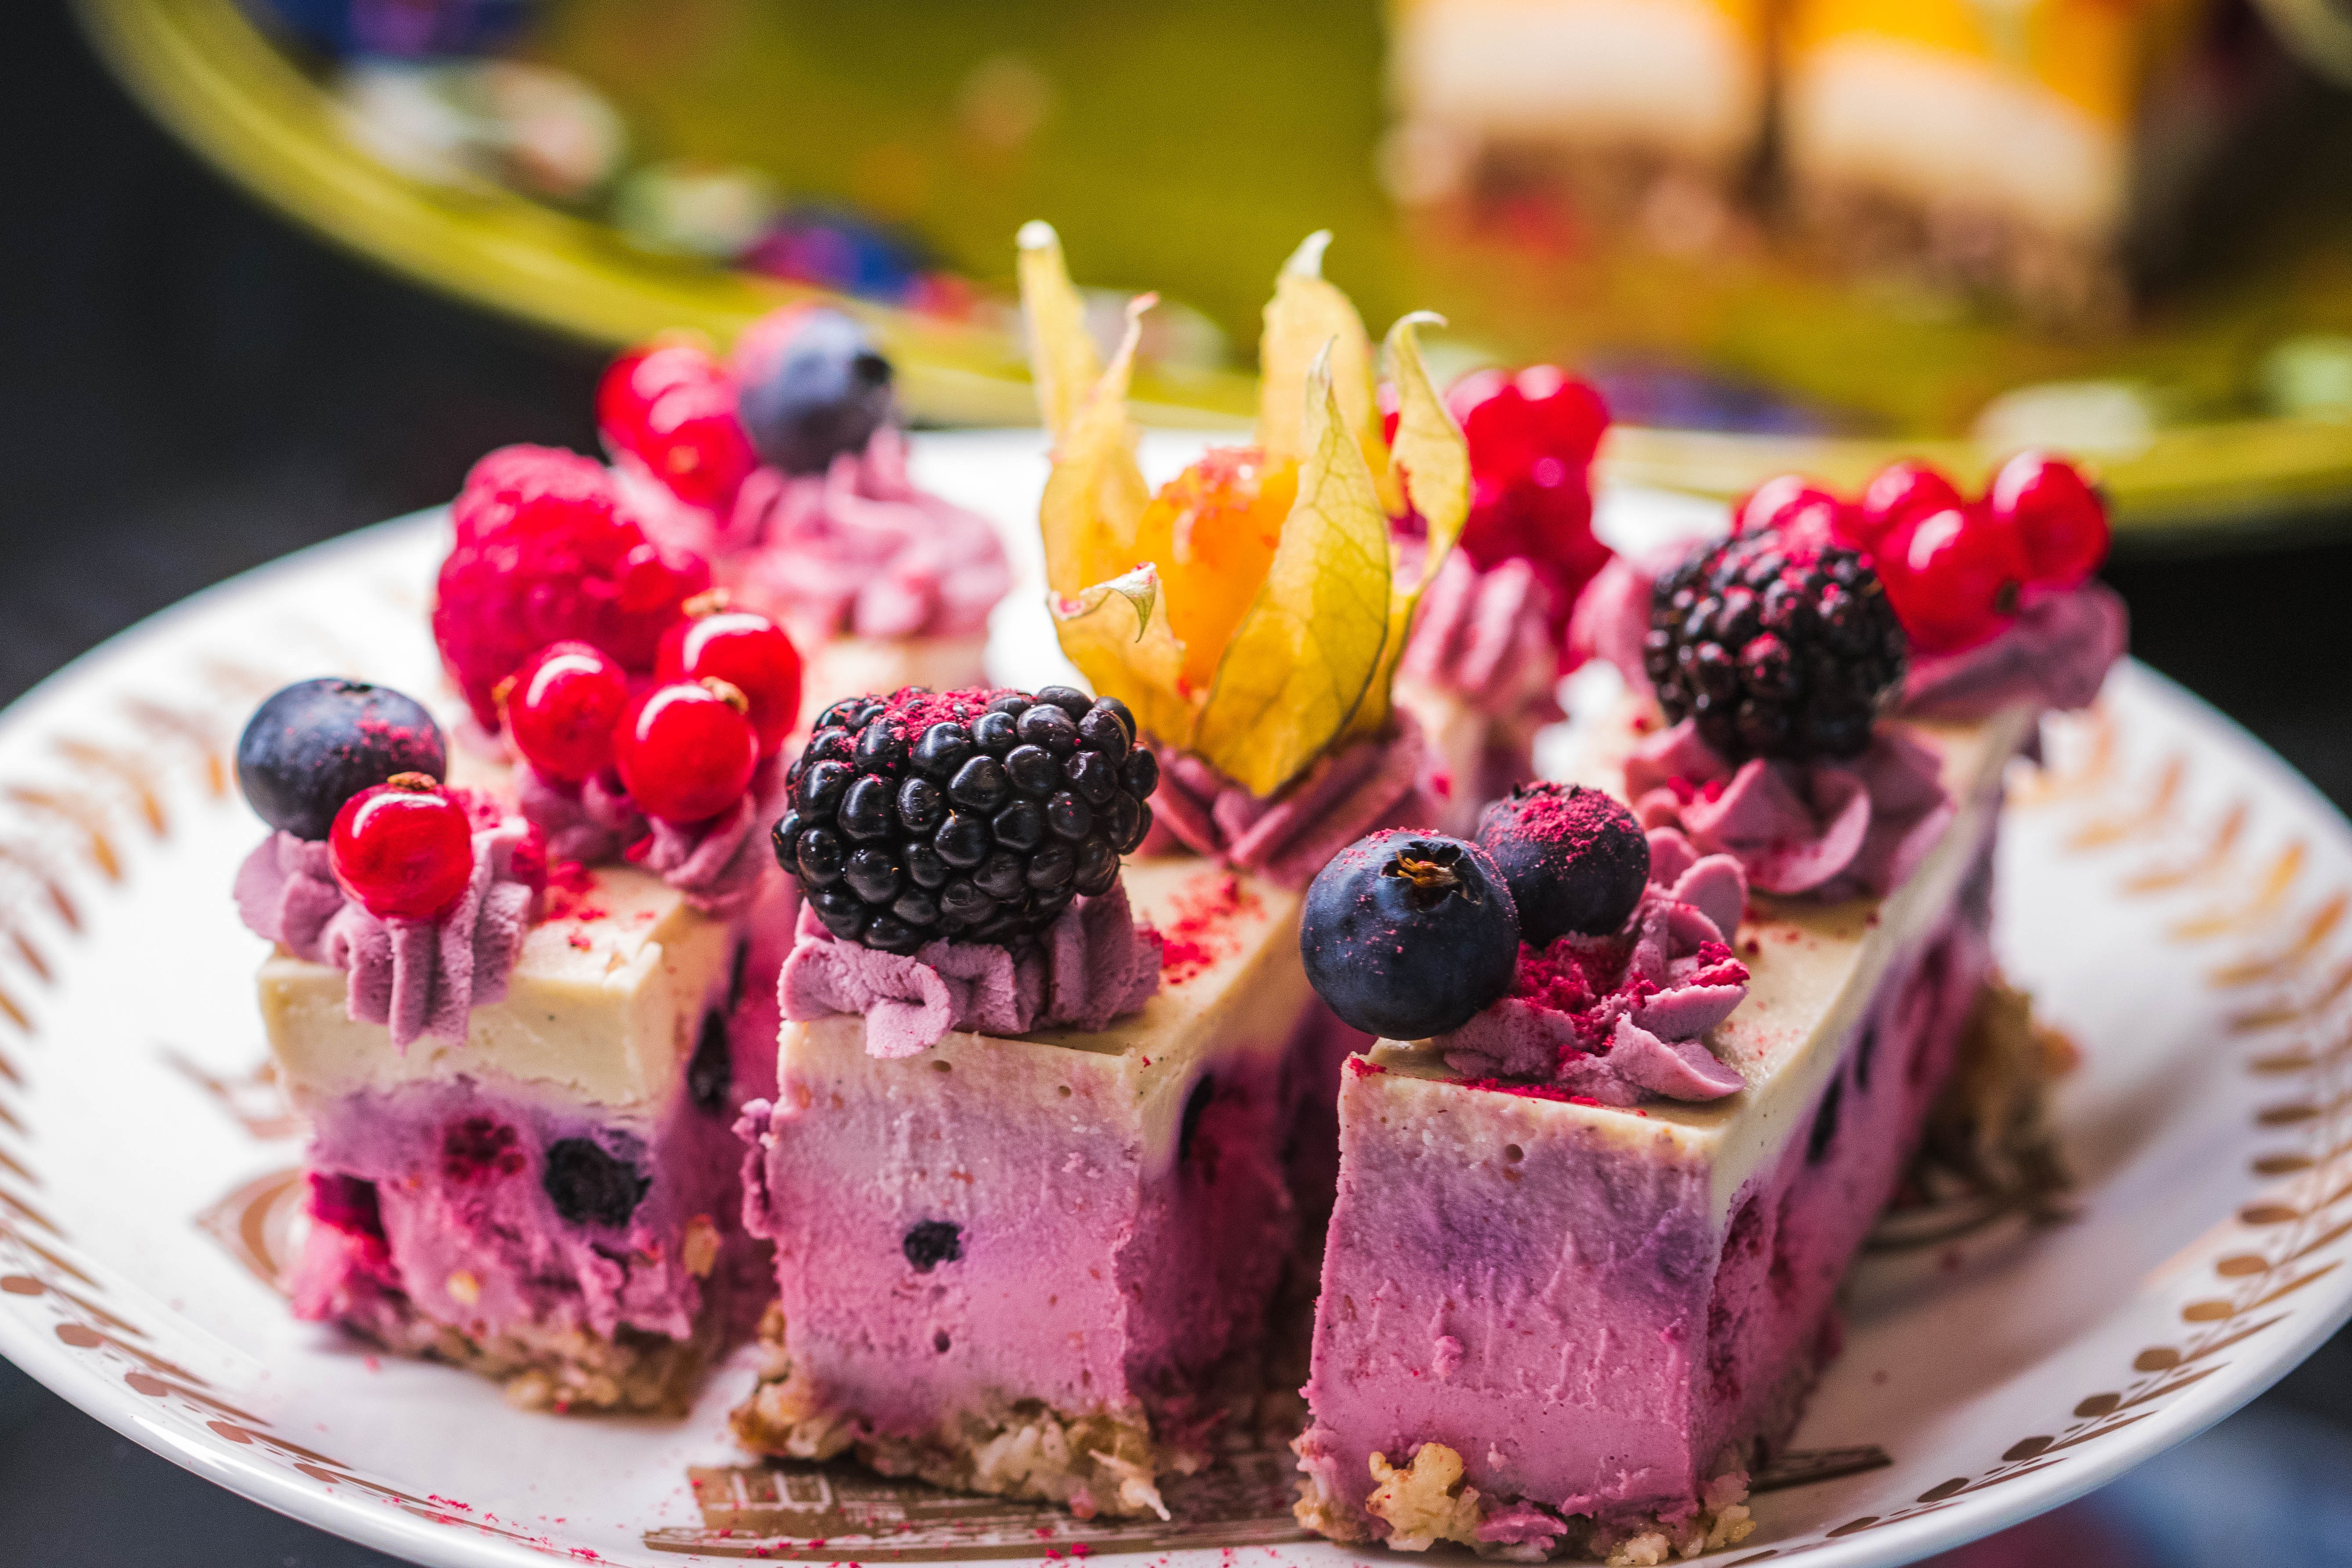 Cake With Raspberry Toppings, Berries, Berry, Blackberry, Blueberry, HQ Photo